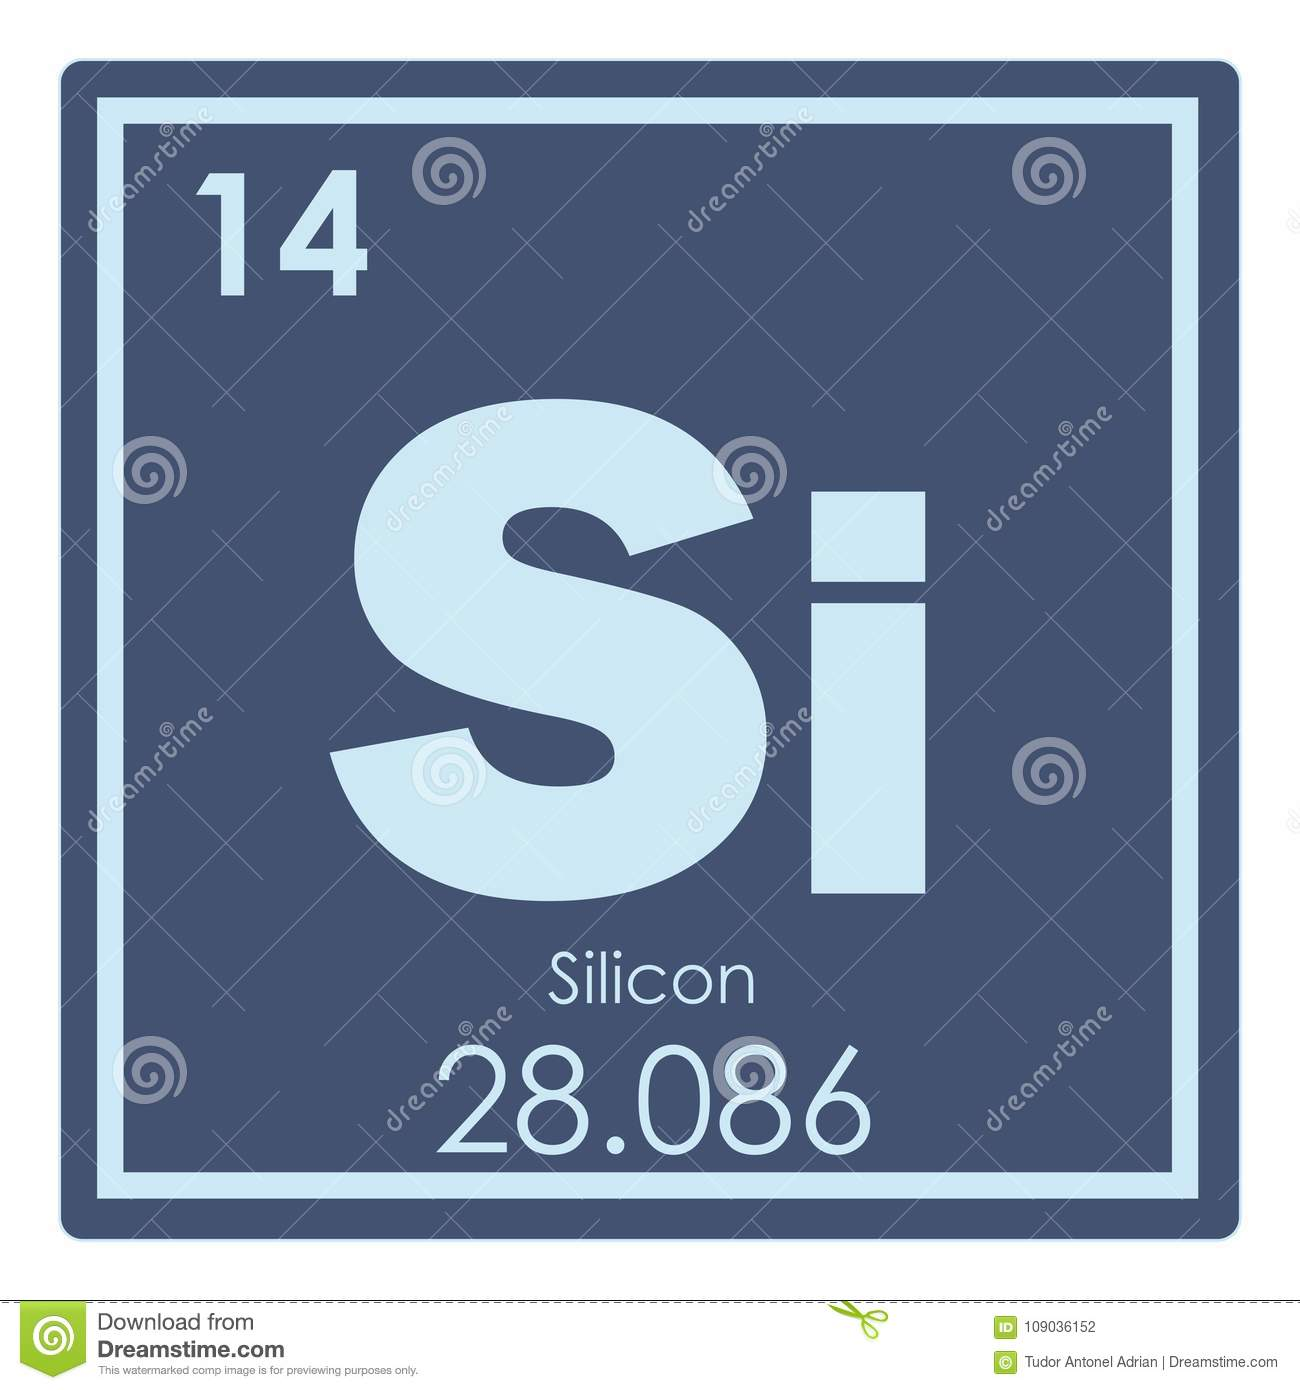 Silicon Chemical Element Stock Illustration Illustration Of Symbol